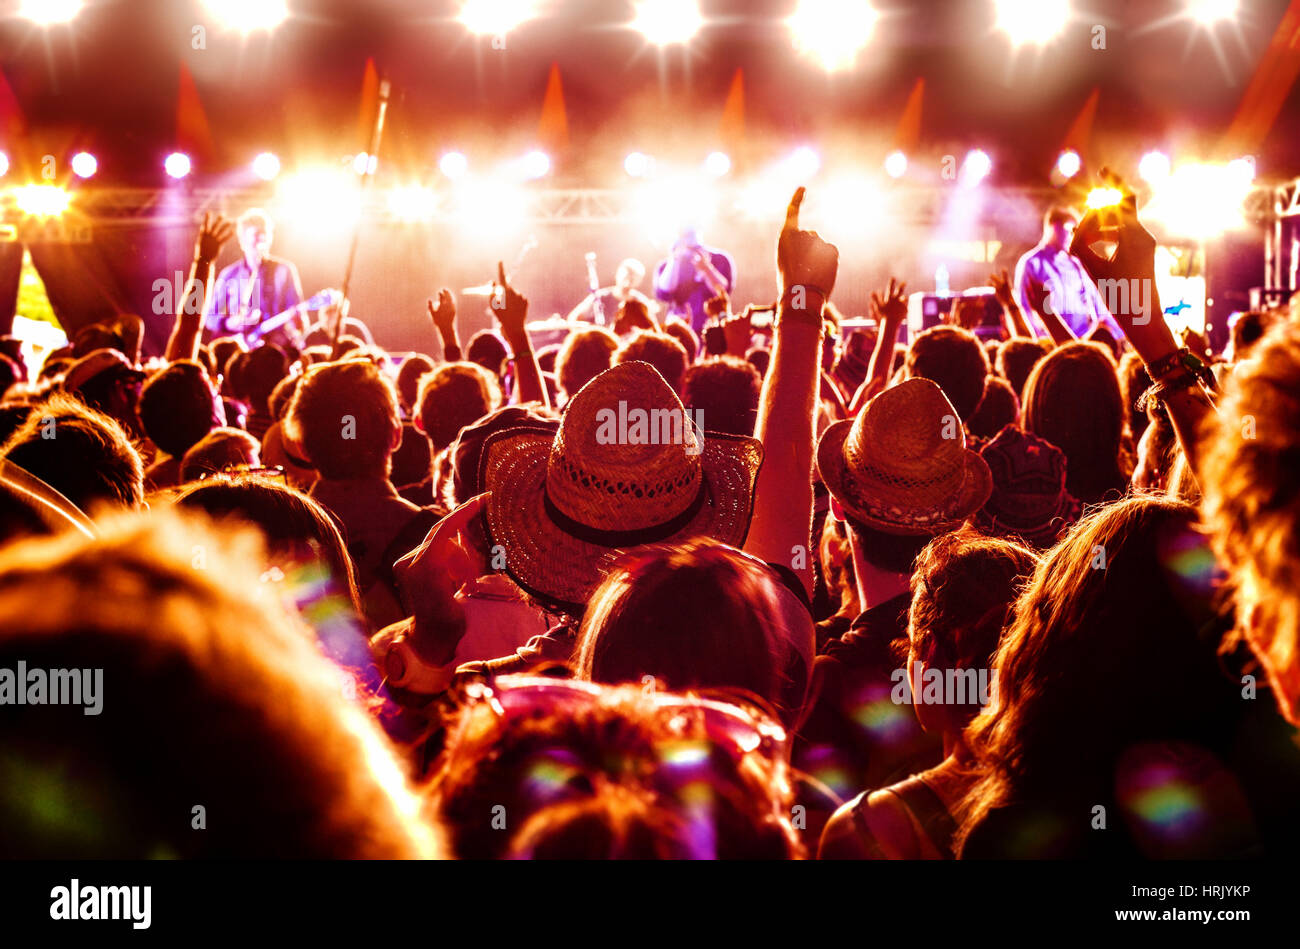 Crowd enjoying a rock band's performance at a music festival - Stock Image